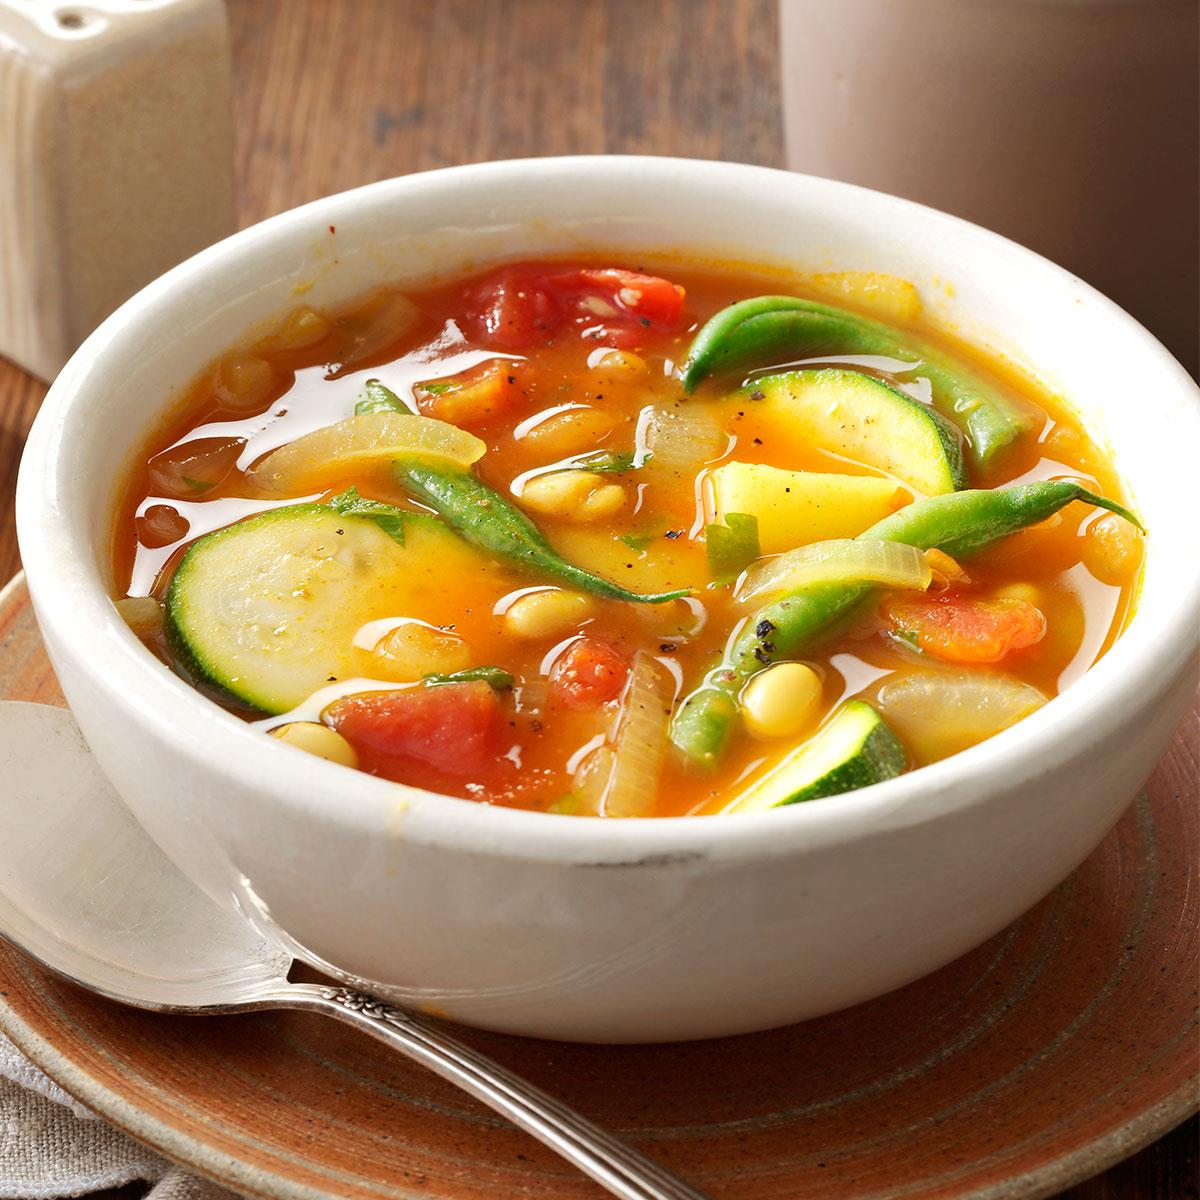 Vegetable stew with zucchini and potatoes 19